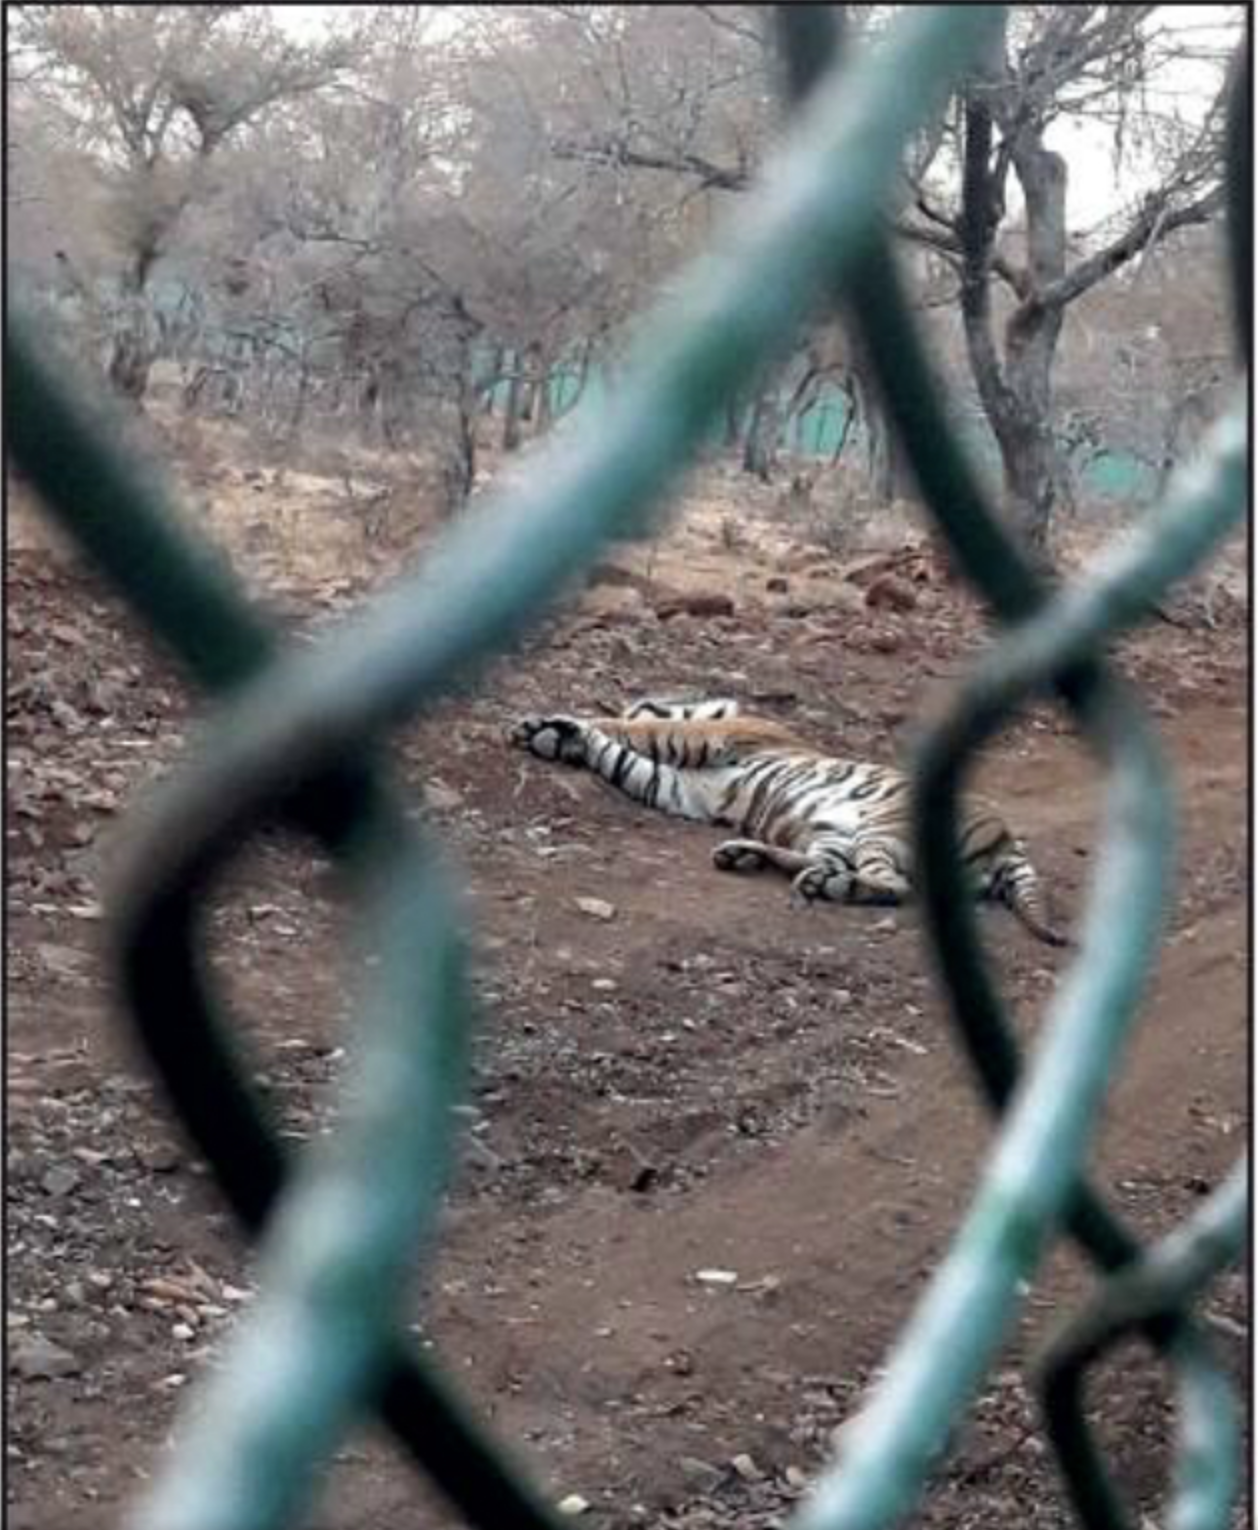 Deaths of Tigers